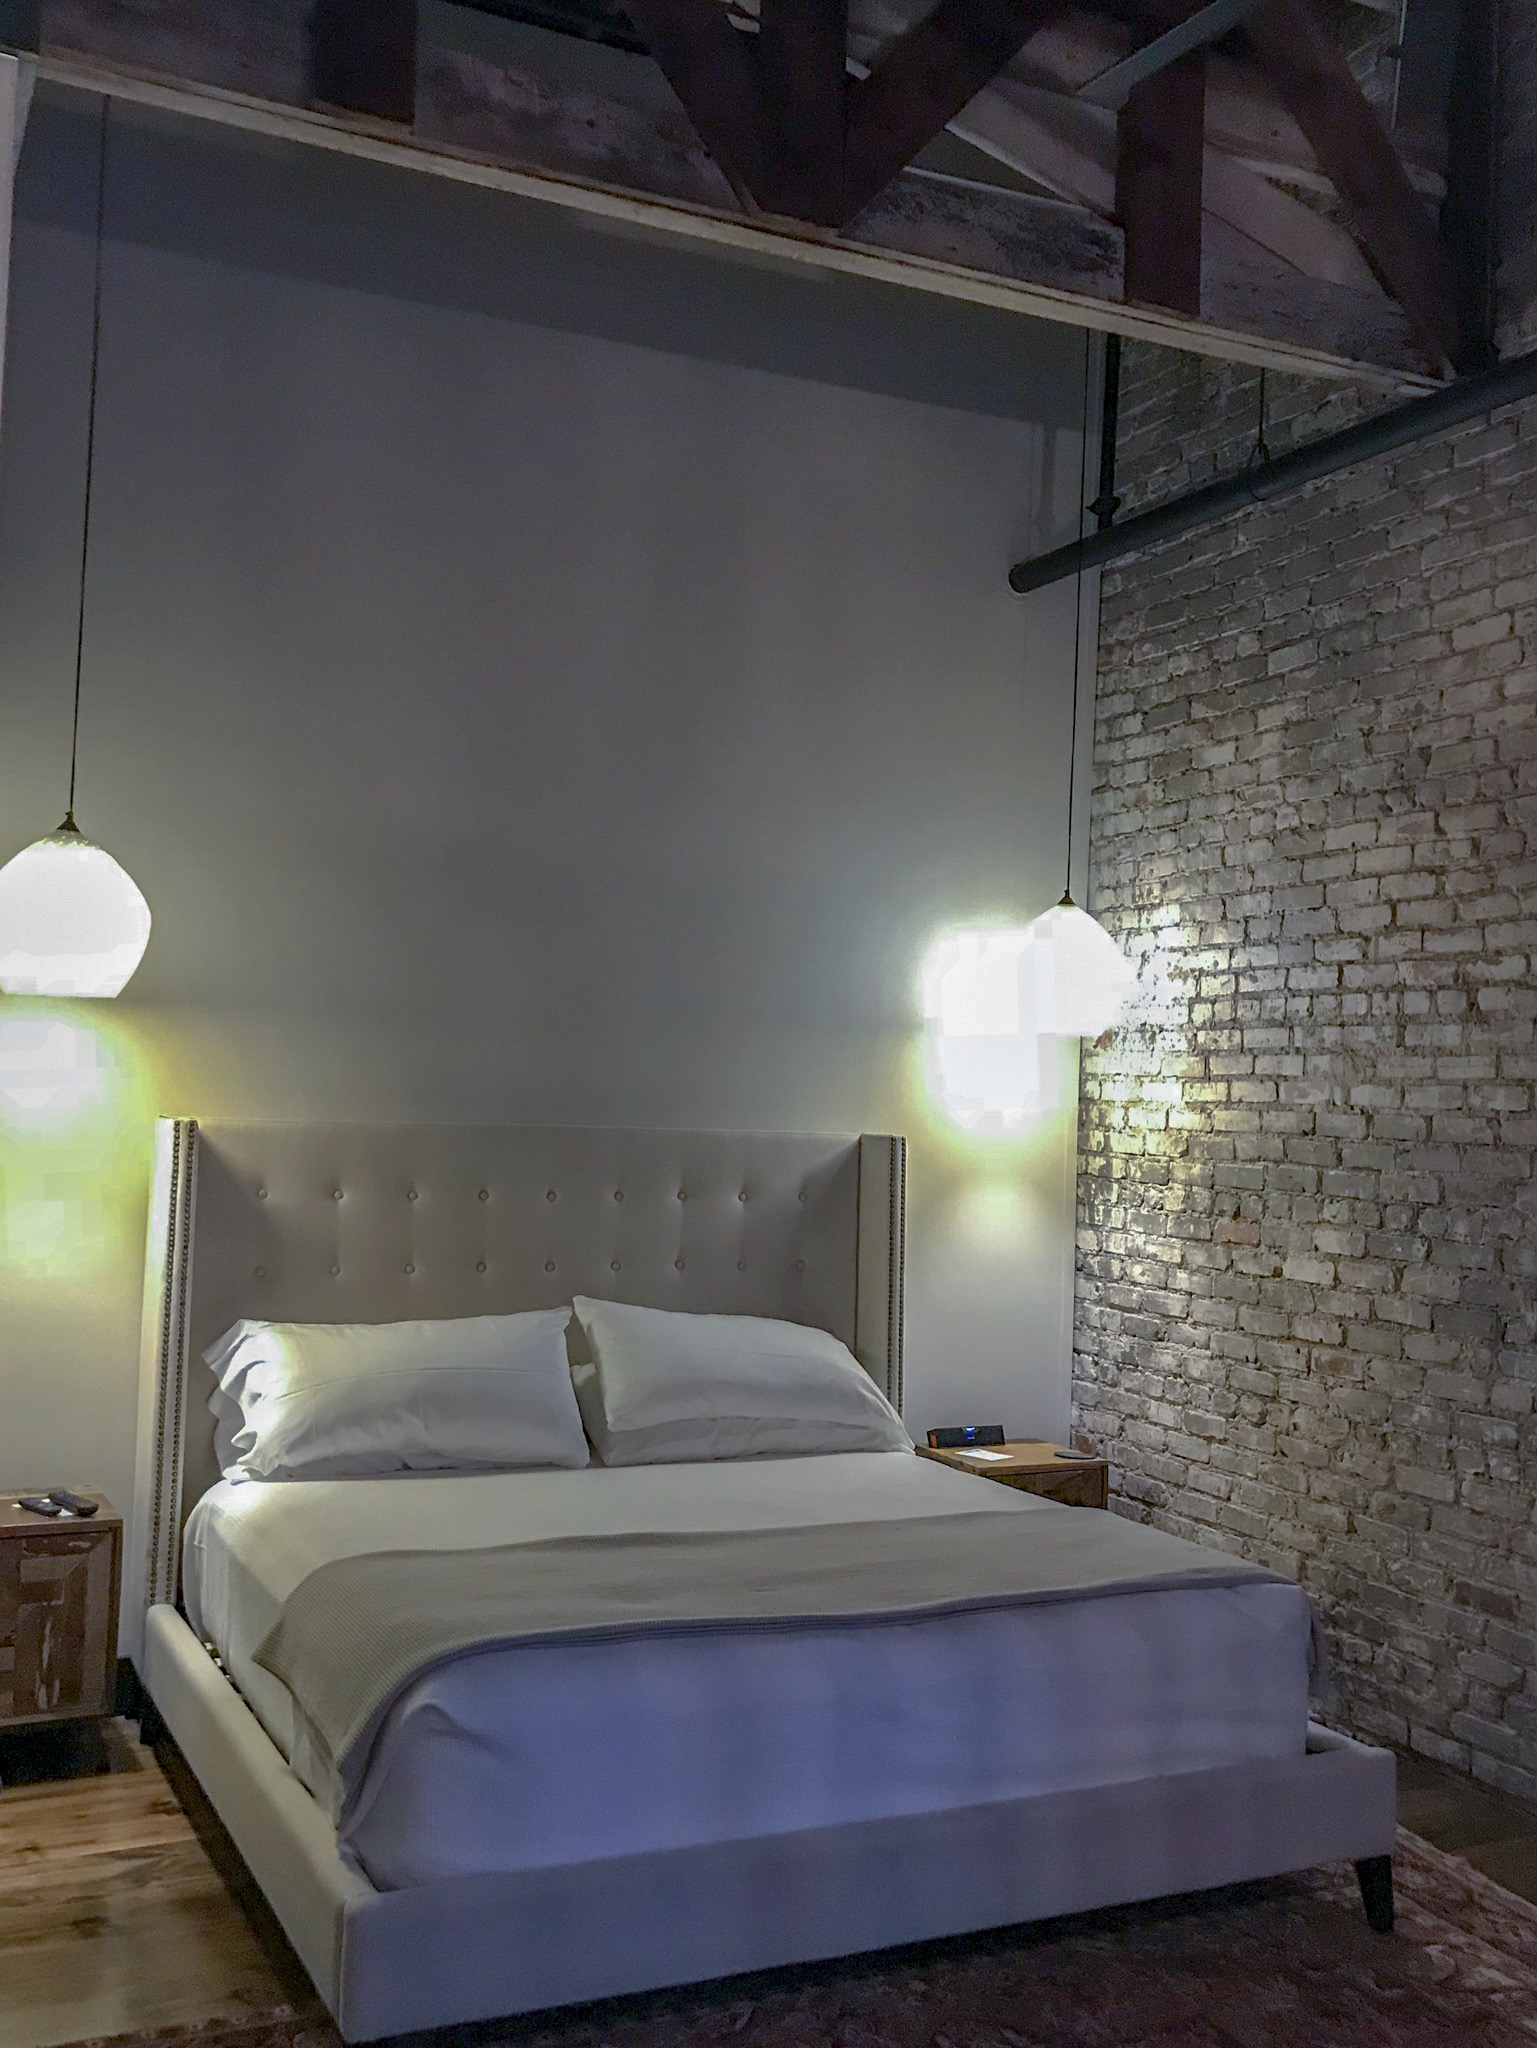 The Peacock Alley linens added a luxurious touch to all the suites at the Gunrunner! With the exposed brick and industrial touches, you wouldn't expect a luxury getaway, but the GunRunner delivers luxury, comfort and privacy - making your North Alabama getaway a dream!